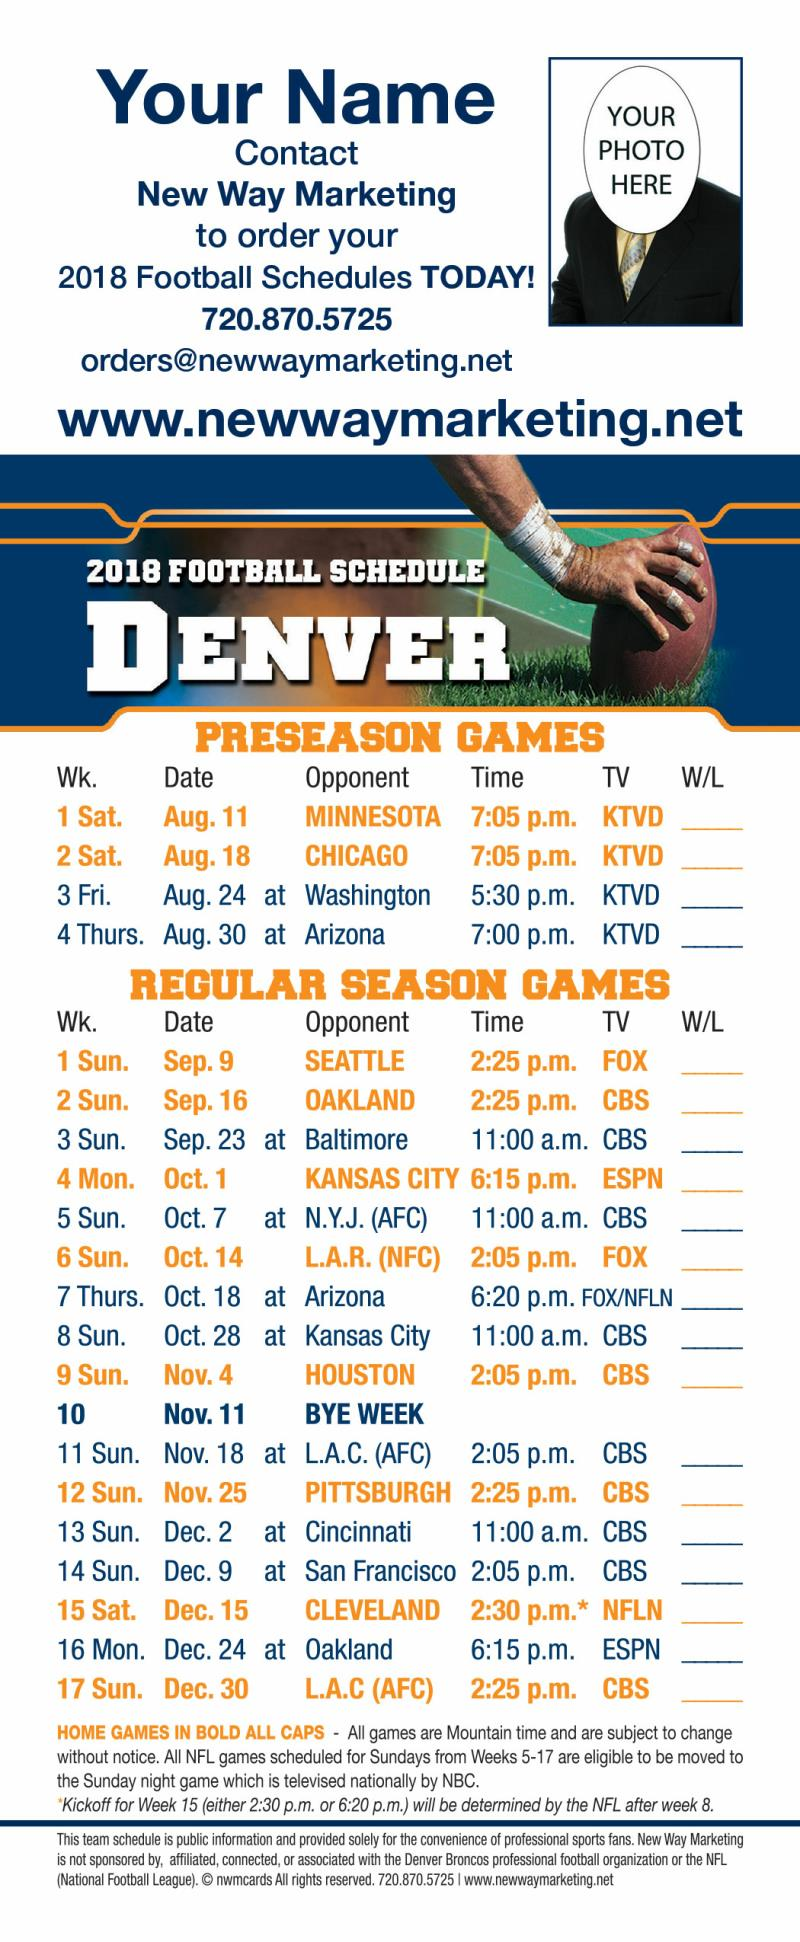 1 white 2018 broncos professional football schedule self mailer schedules have a magnetic